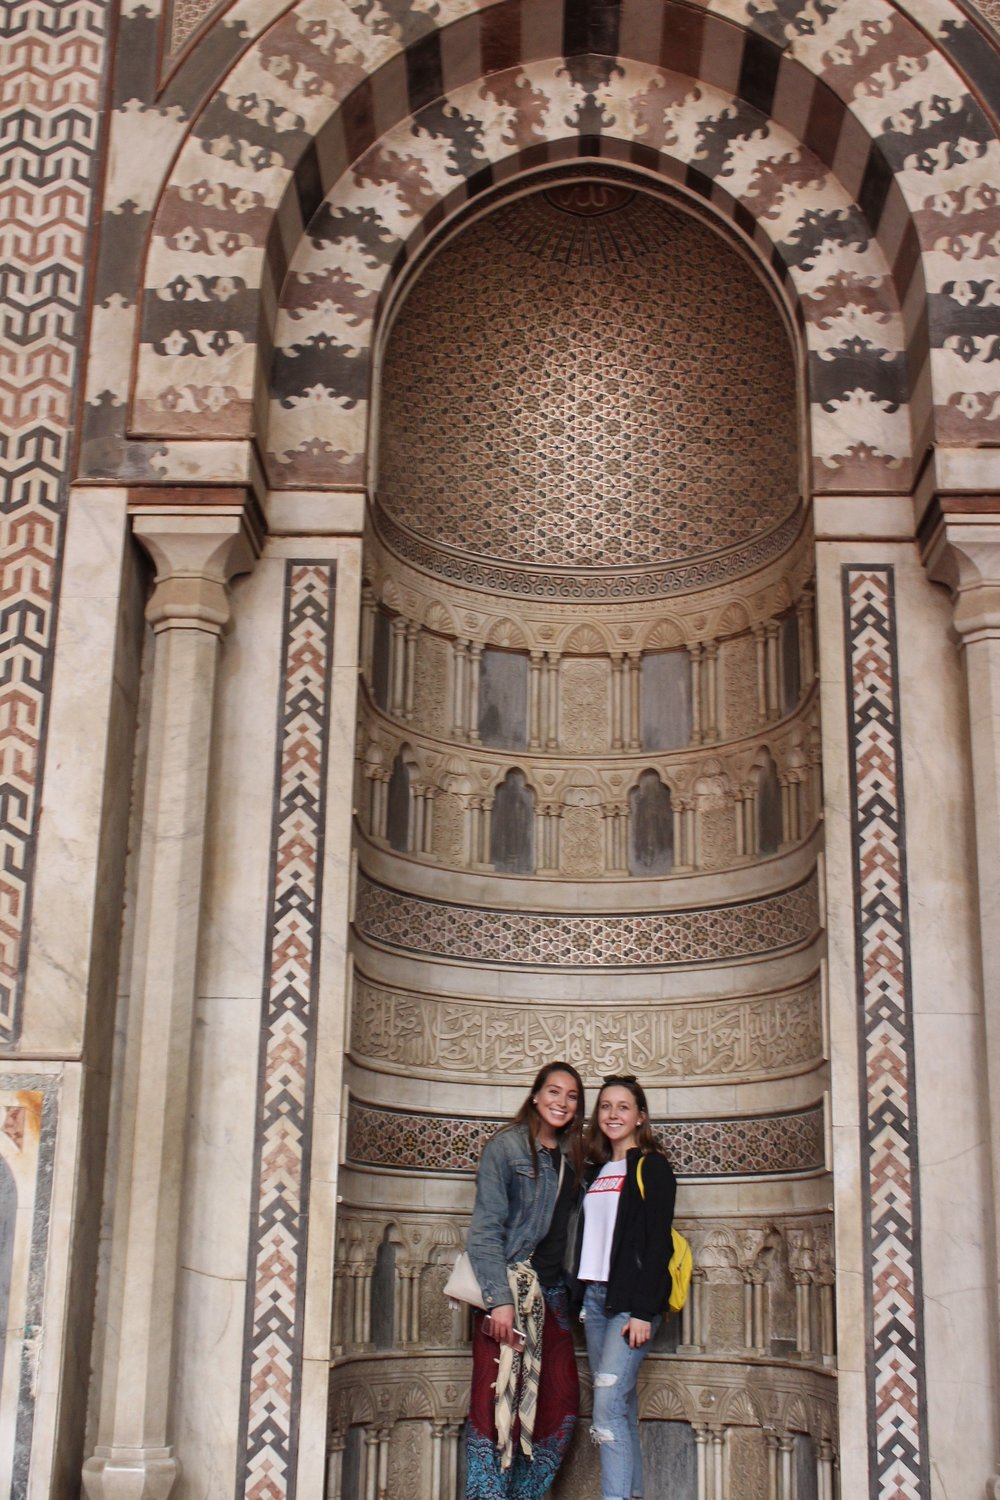 Touring Cairo on our first day. Photo credit: Arguin, 2019